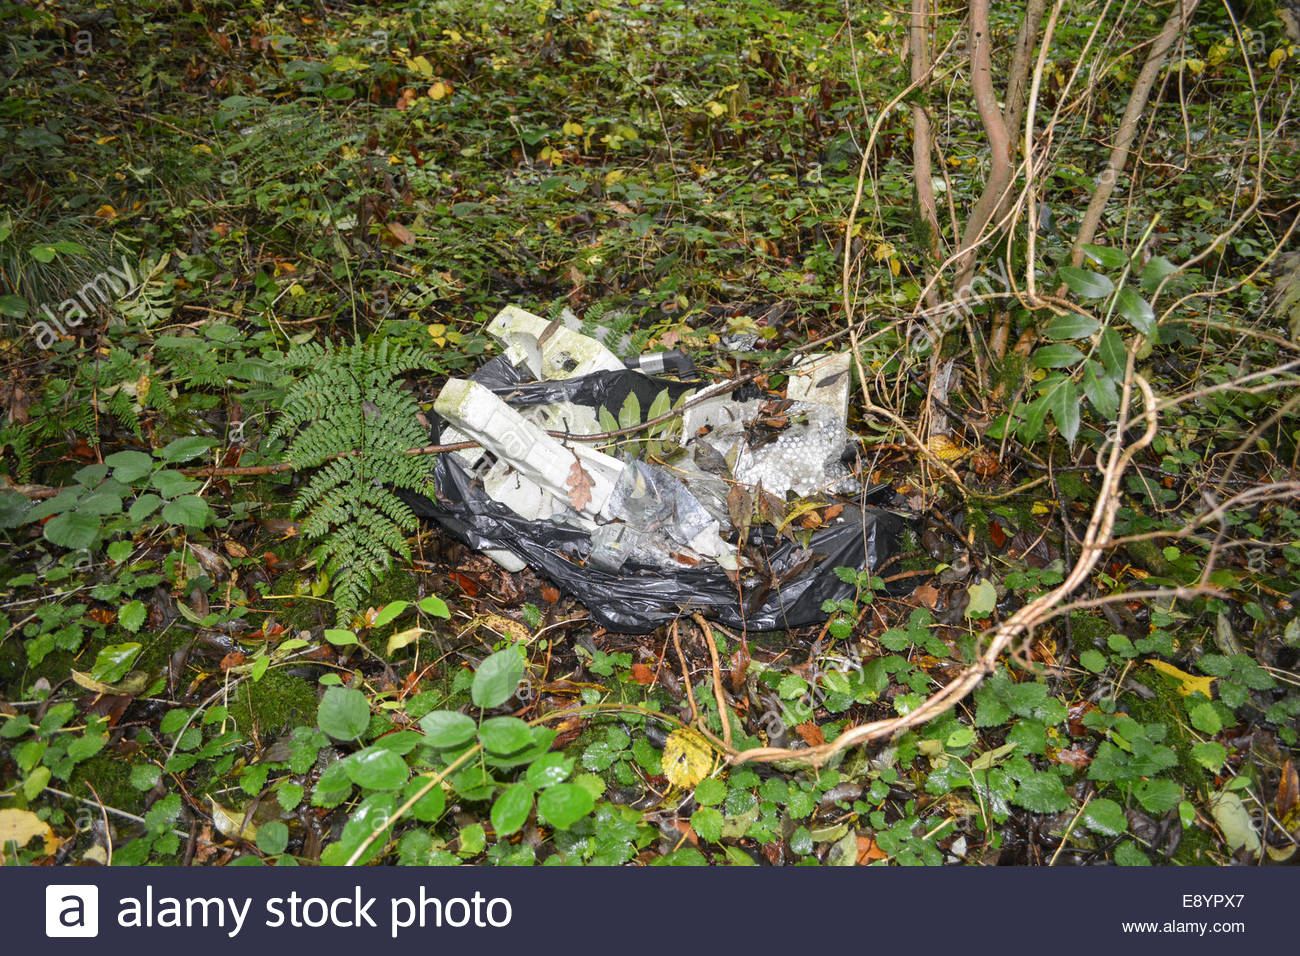 Rubbish dumped in woodland in the Shropshire countryside. - Stock Image